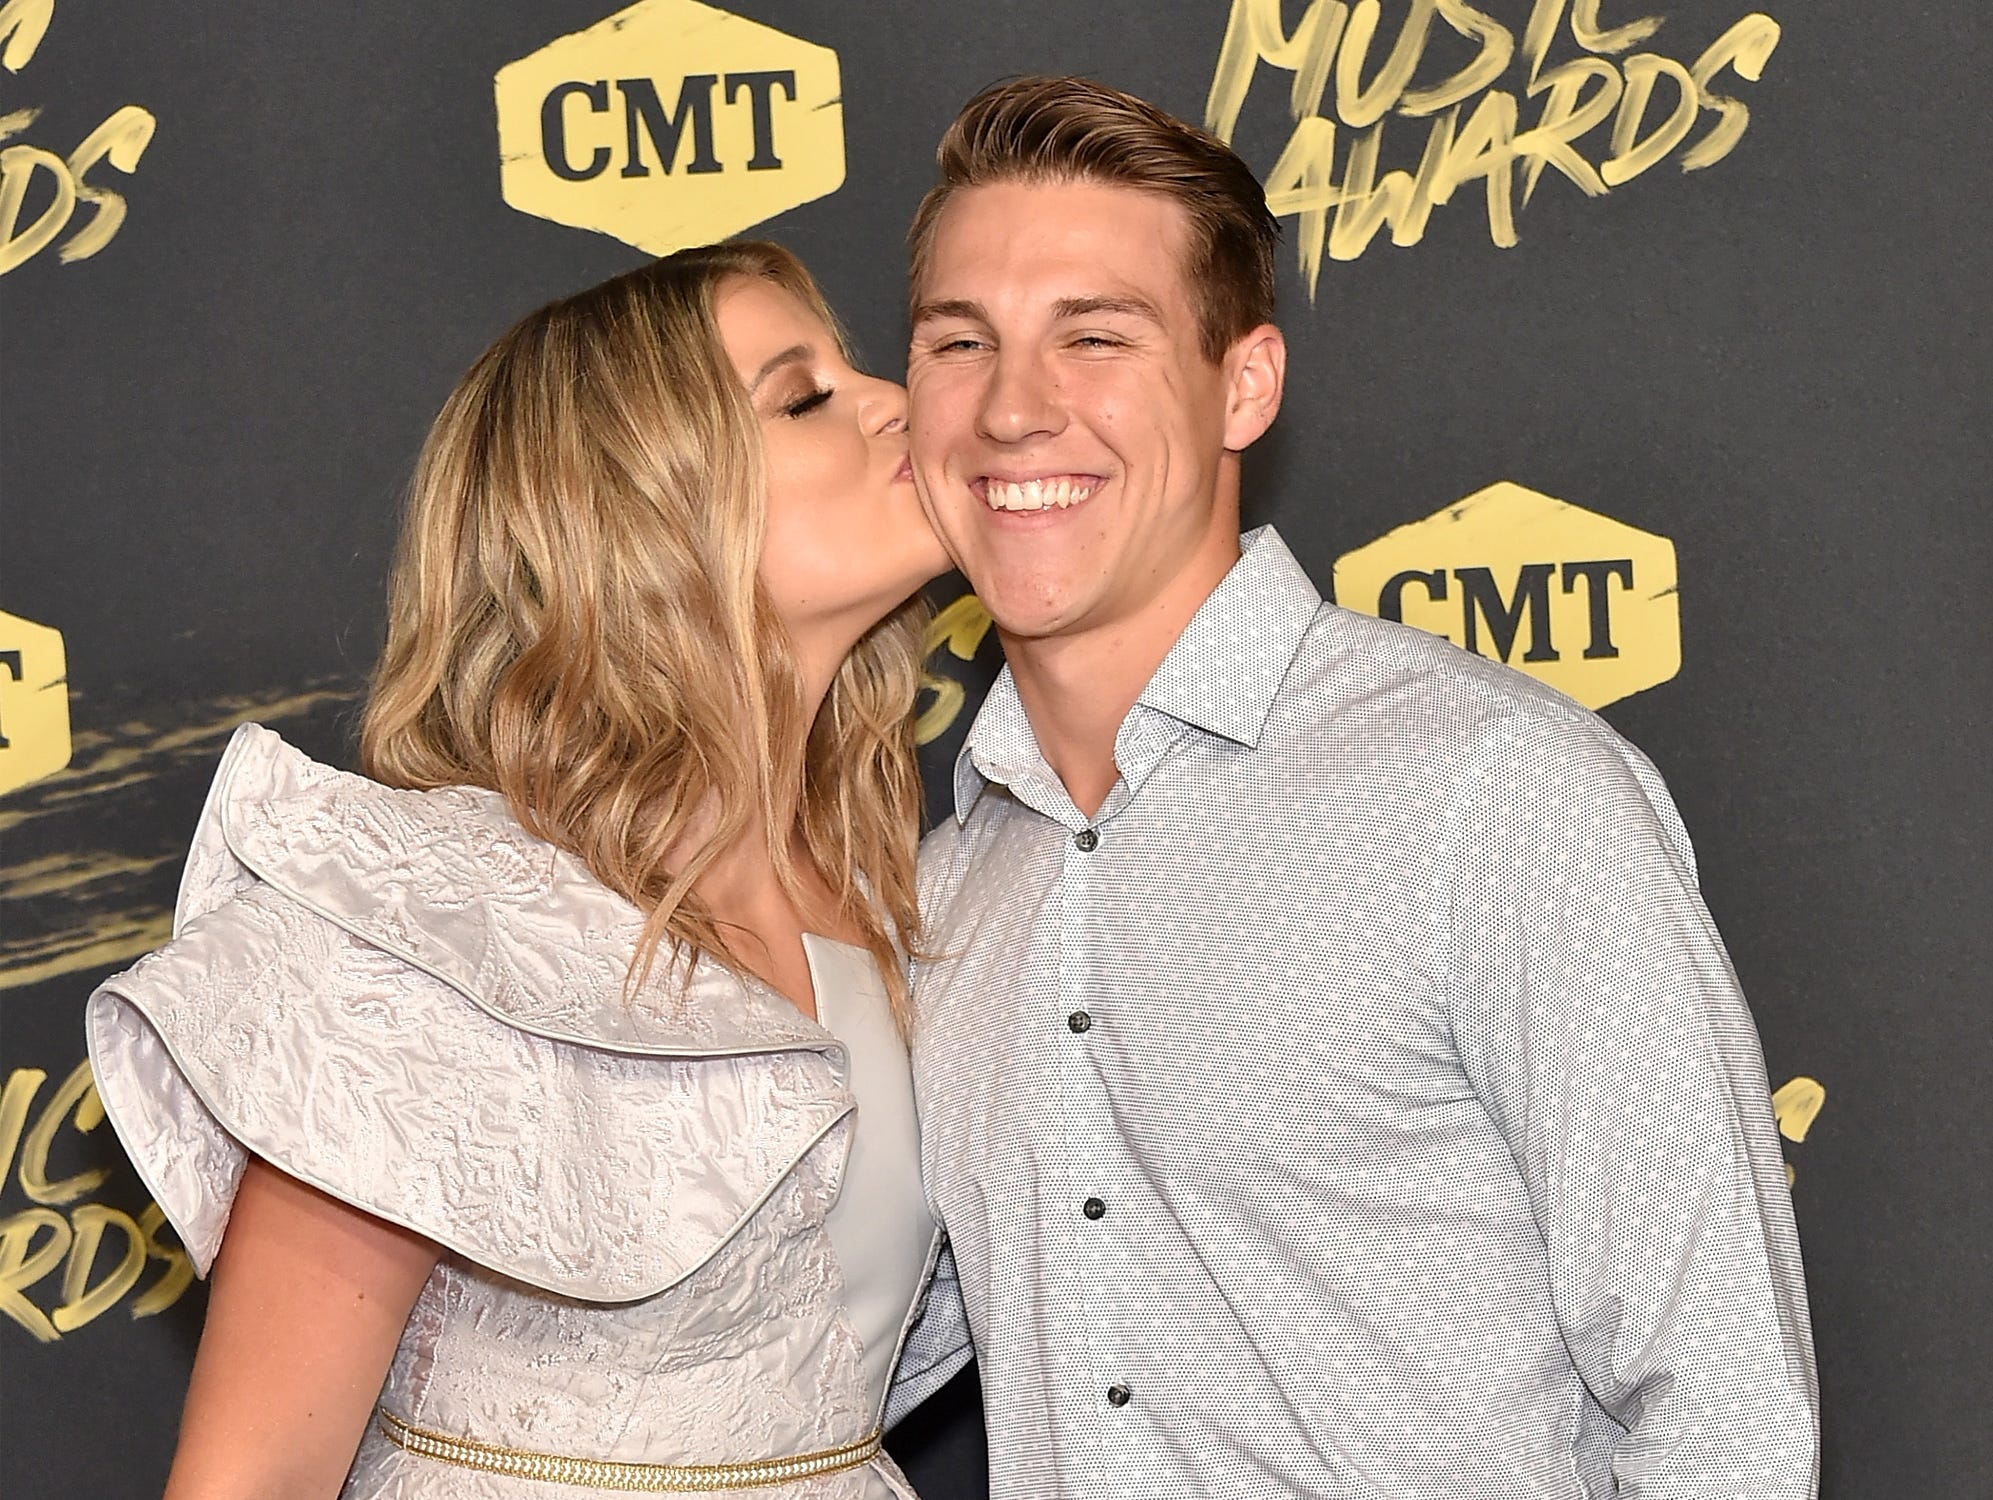 Country singer Lauren Alaina gave fiance Alex Hopkins a smooch at the CMT Music Awards on June 6, 2018 in Nashville.